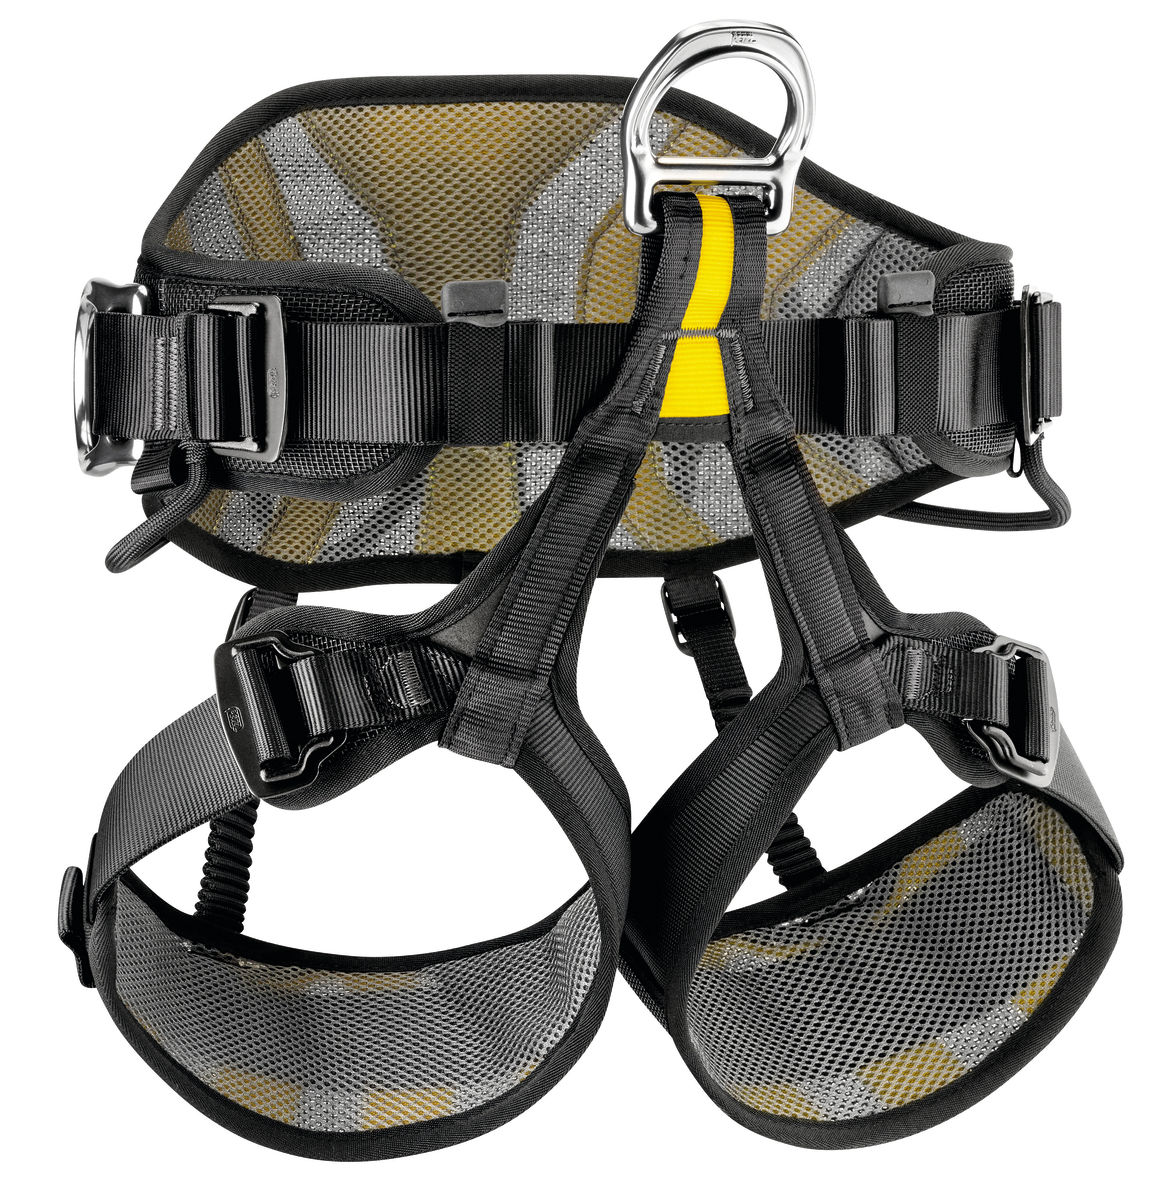 Work Positioning/Suspension Harnesses